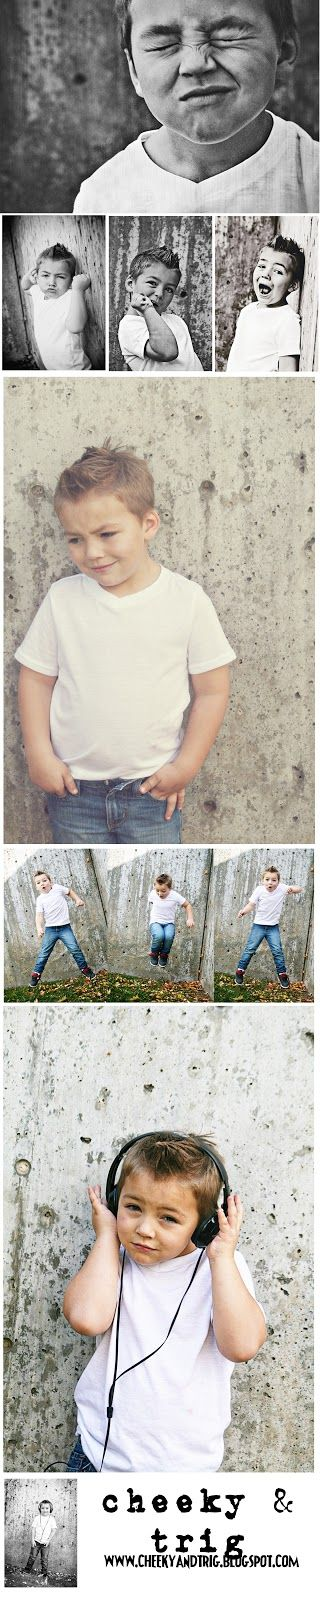 Boys Photoshoot Ideas